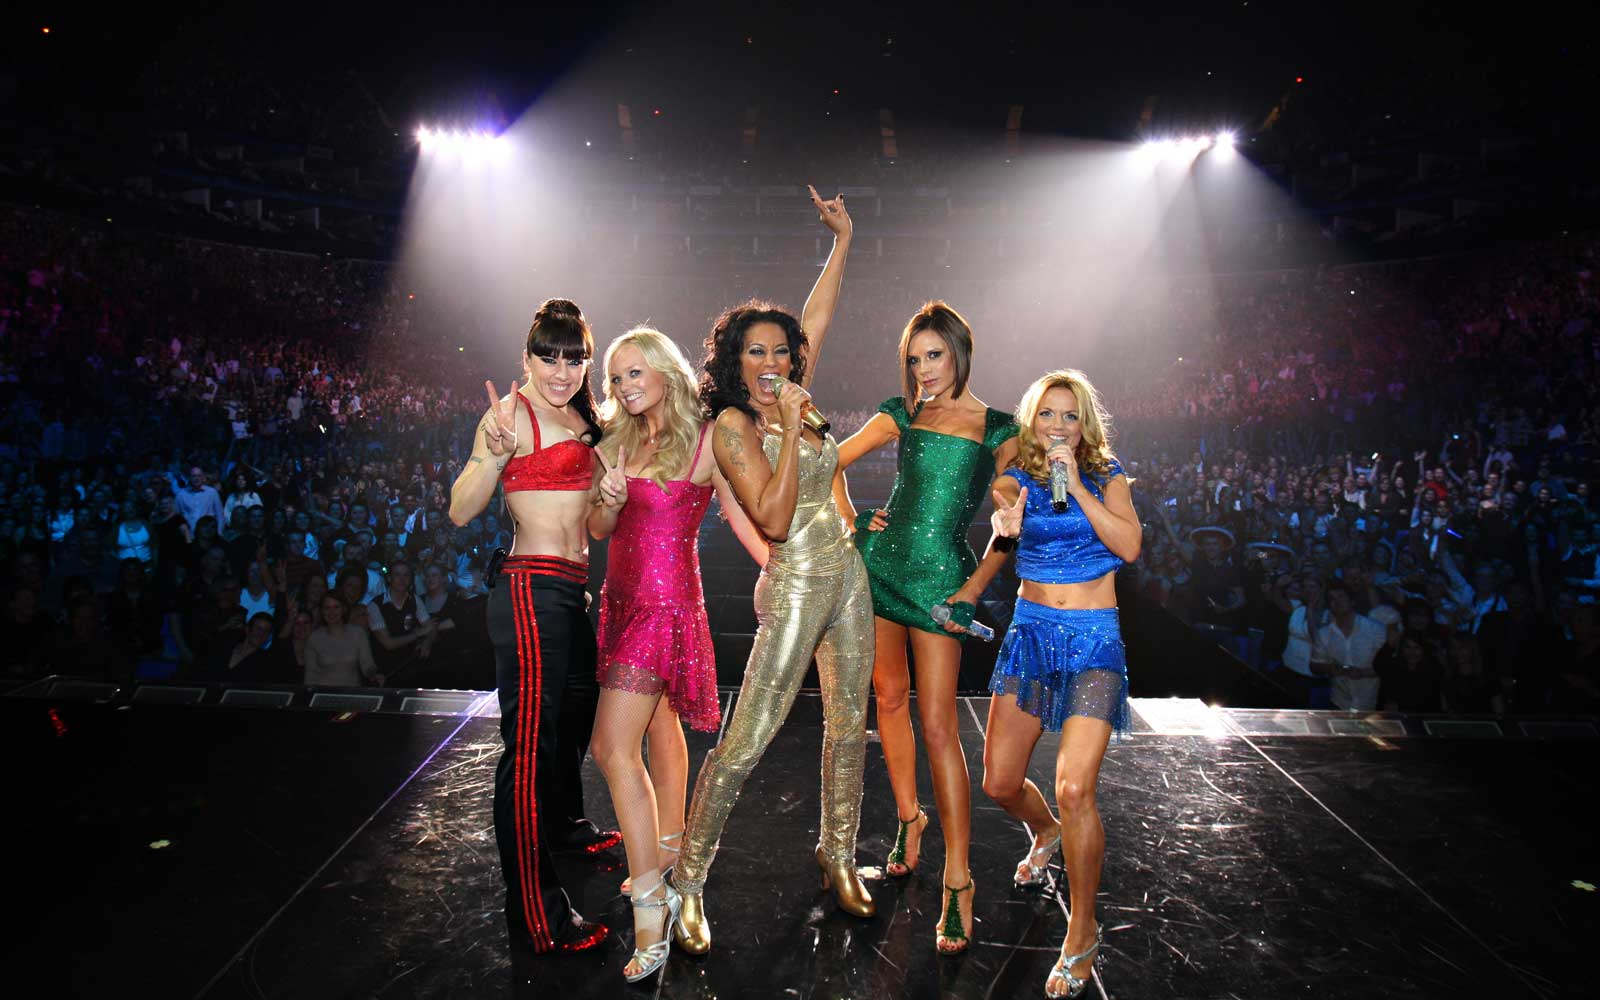 The Spice Girls Are Hiring Back-up Dancers for Their Summer Tour — Here's How to Apply